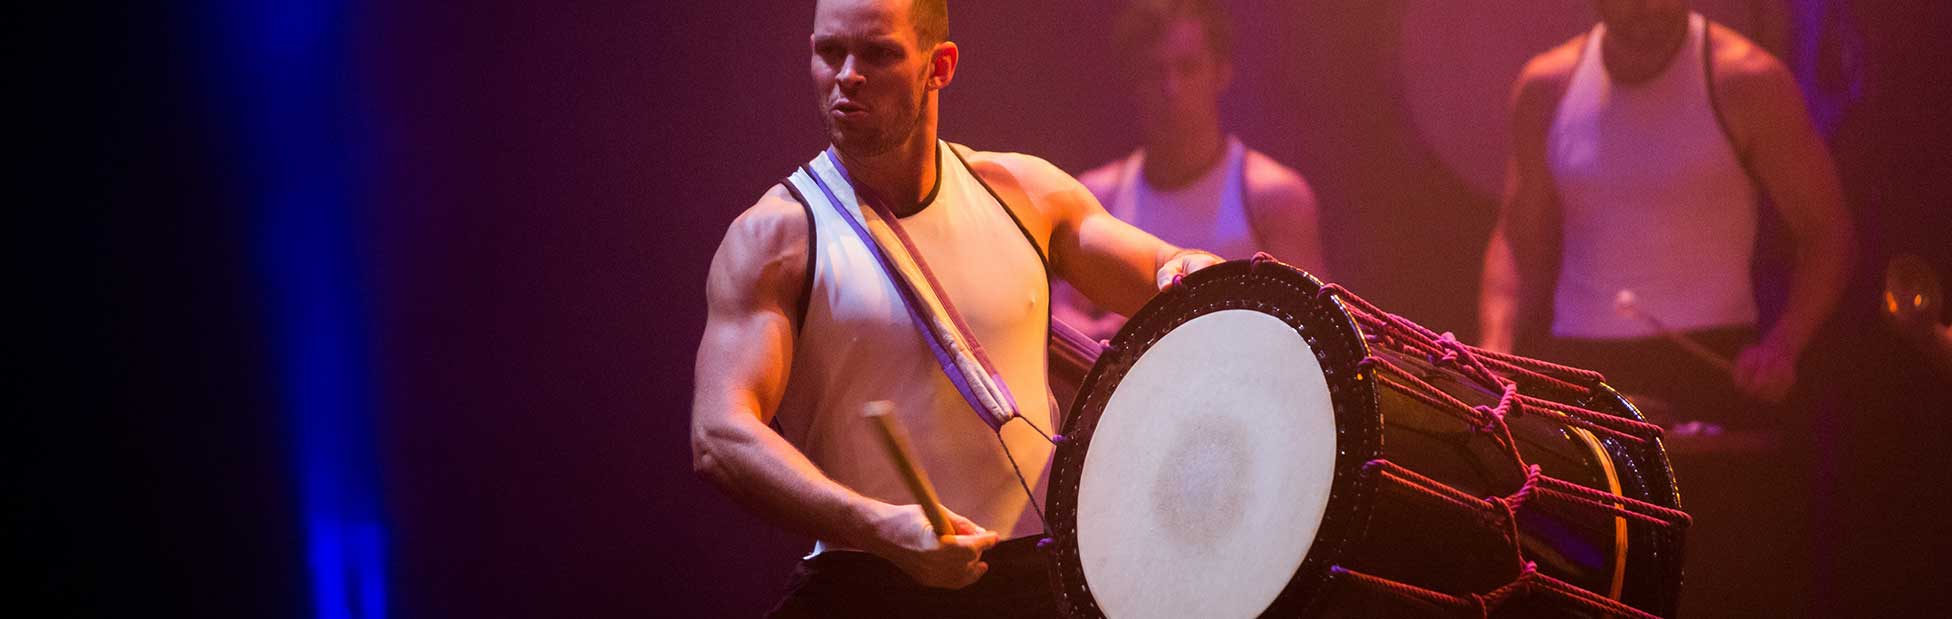 Man playing drum on stage